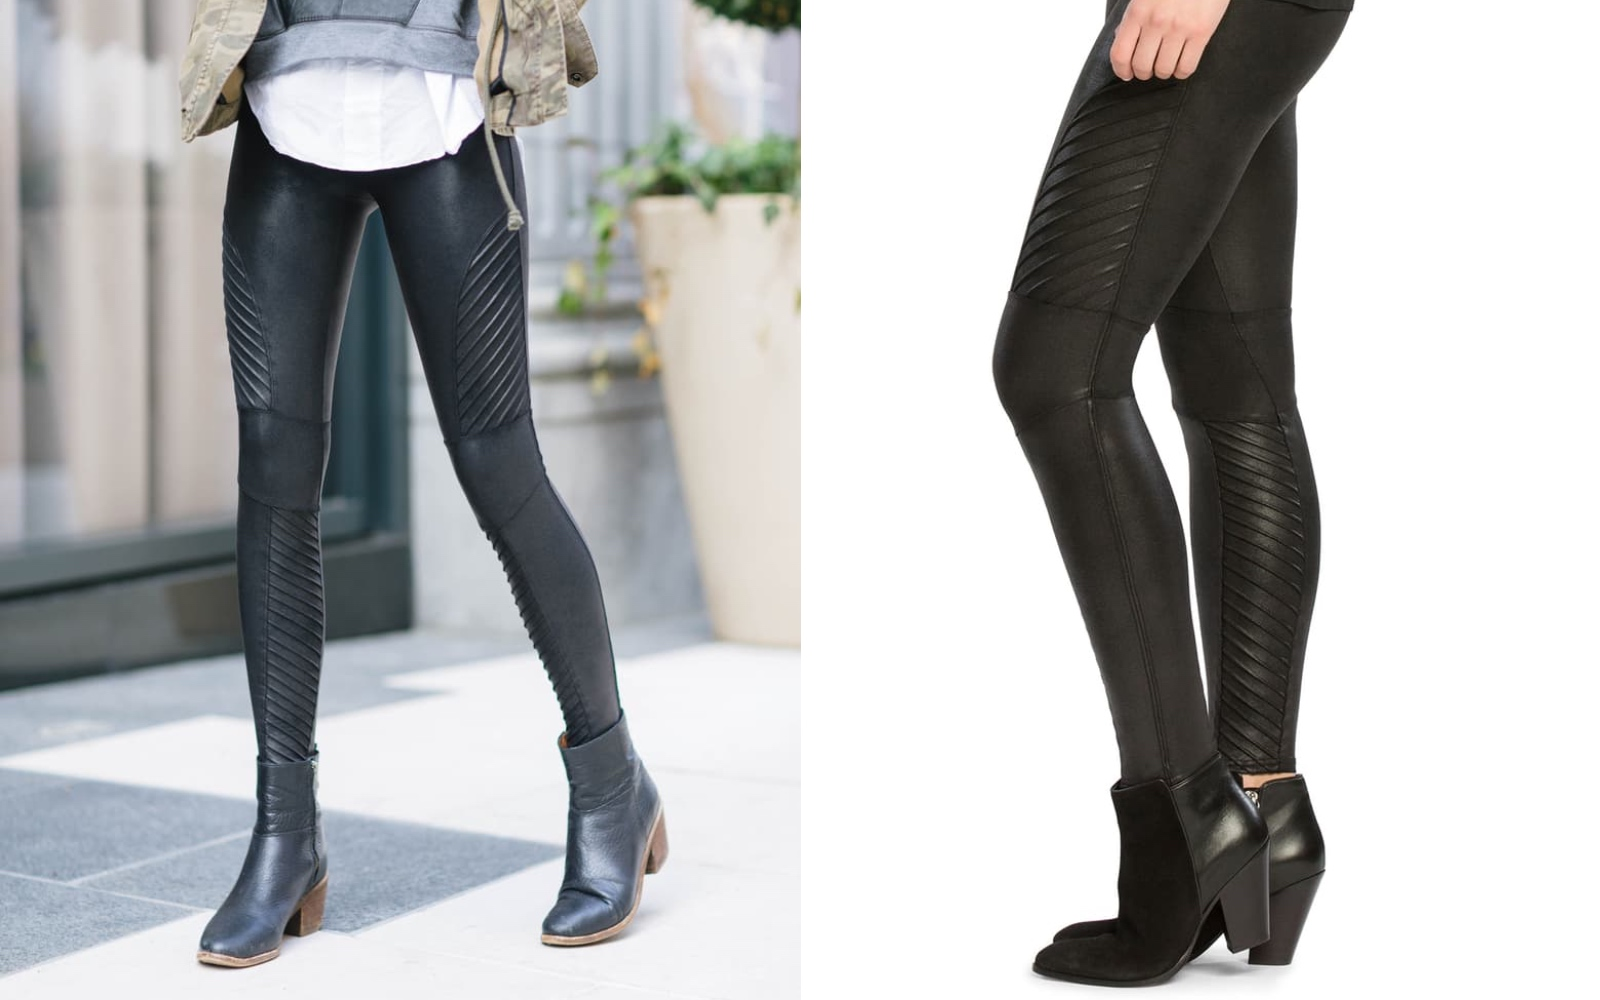 These Top-rated Spanx Leggings Are the Chicest Compression Leggings You Can Buy